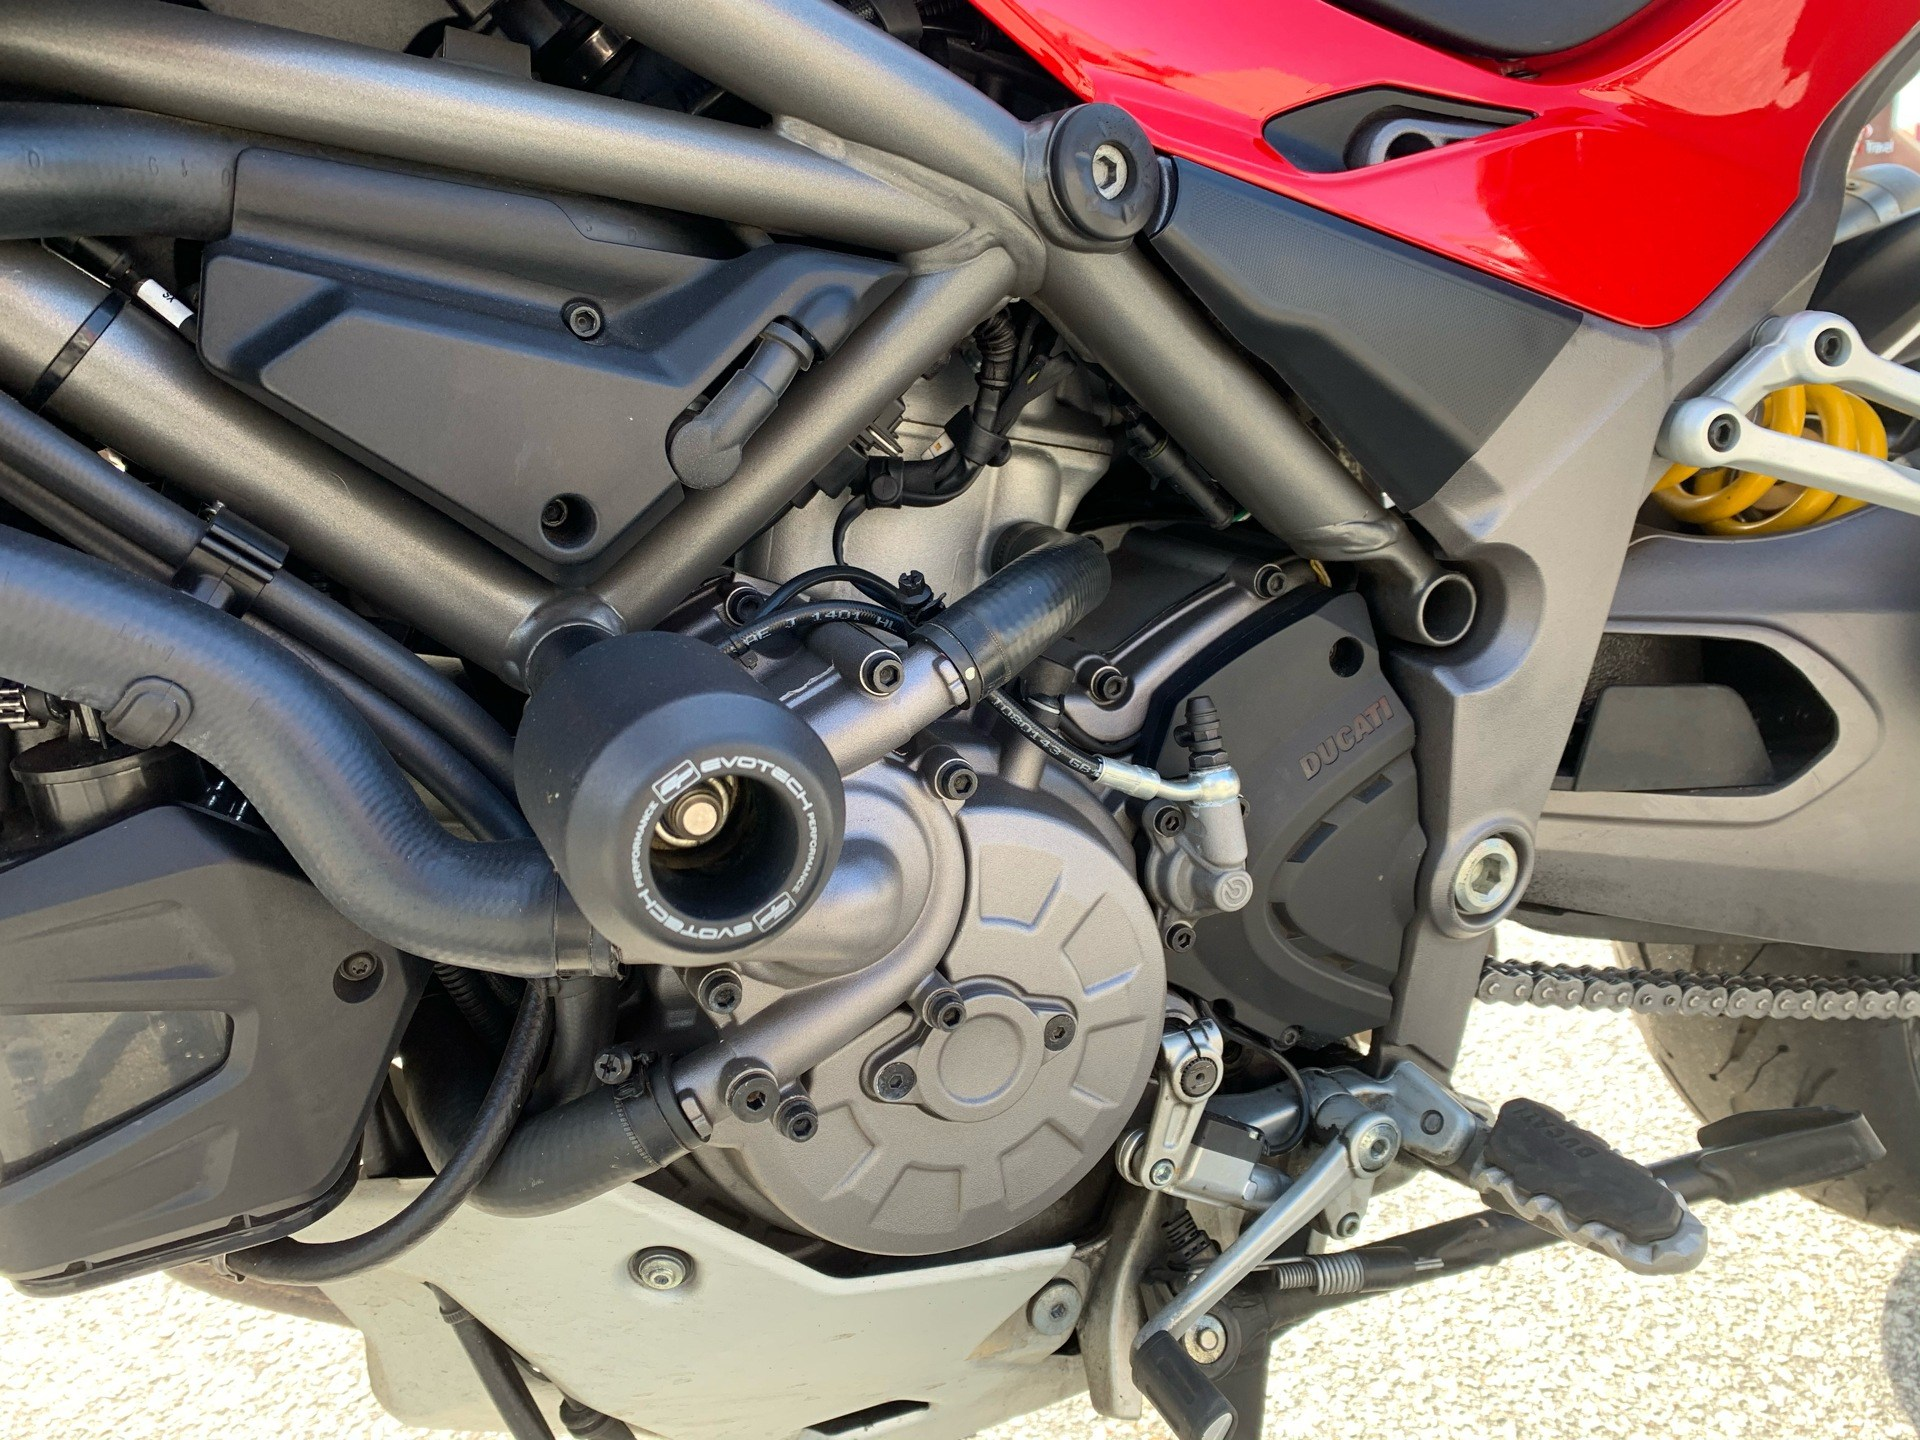 2019 Ducati Multistrada 1260 S Touring in Greenville, South Carolina - Photo 7